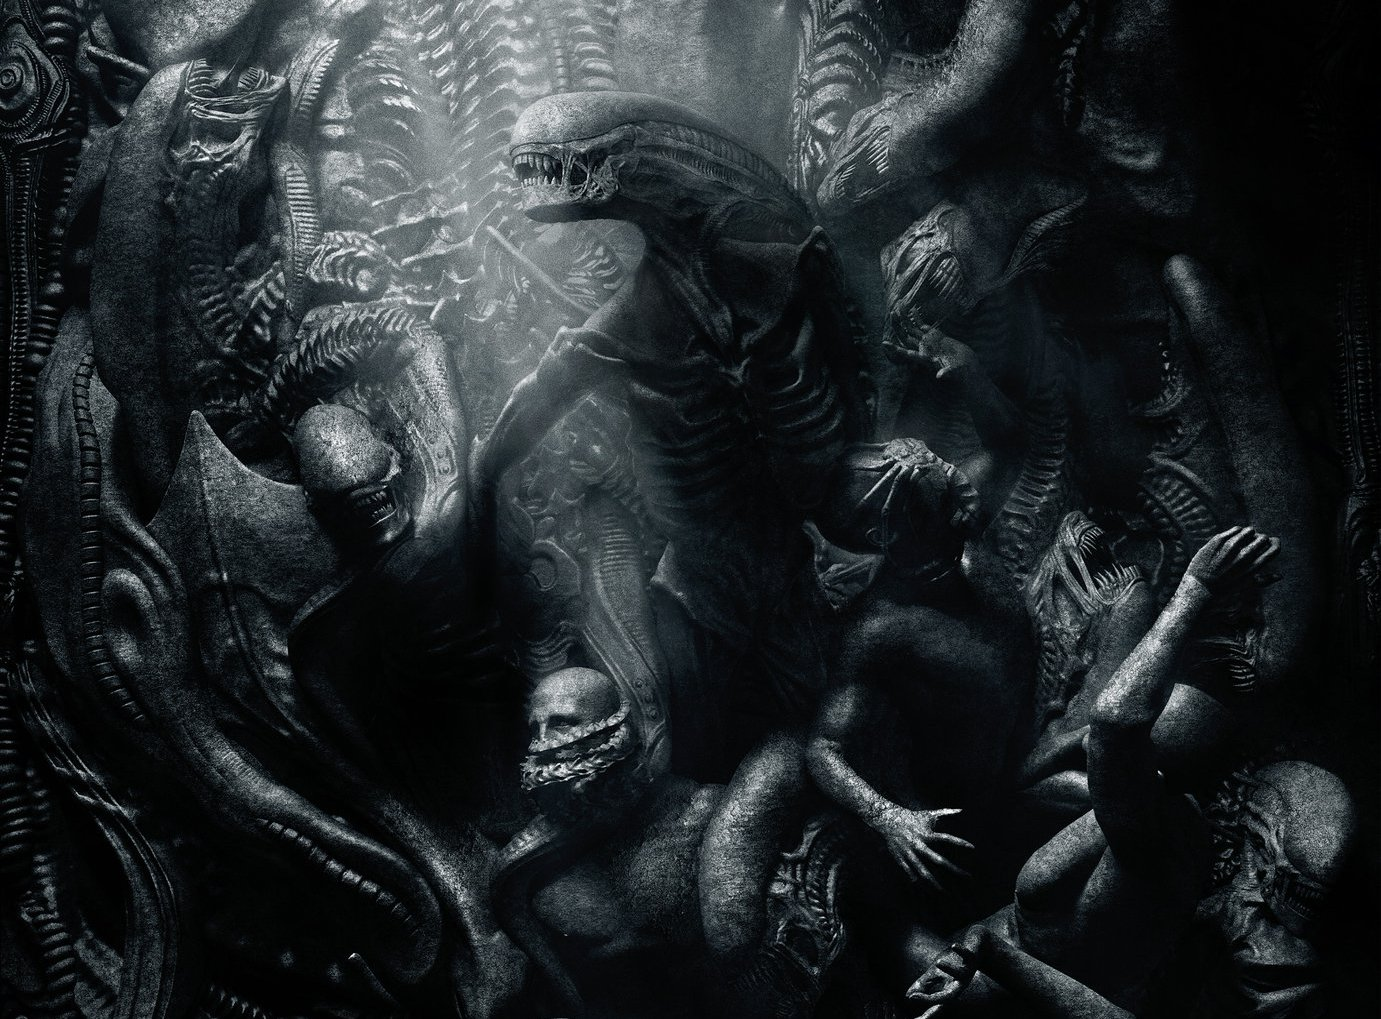 xalien covenant fill.jpg.pagespeed.ic.rPyCbS72Kx